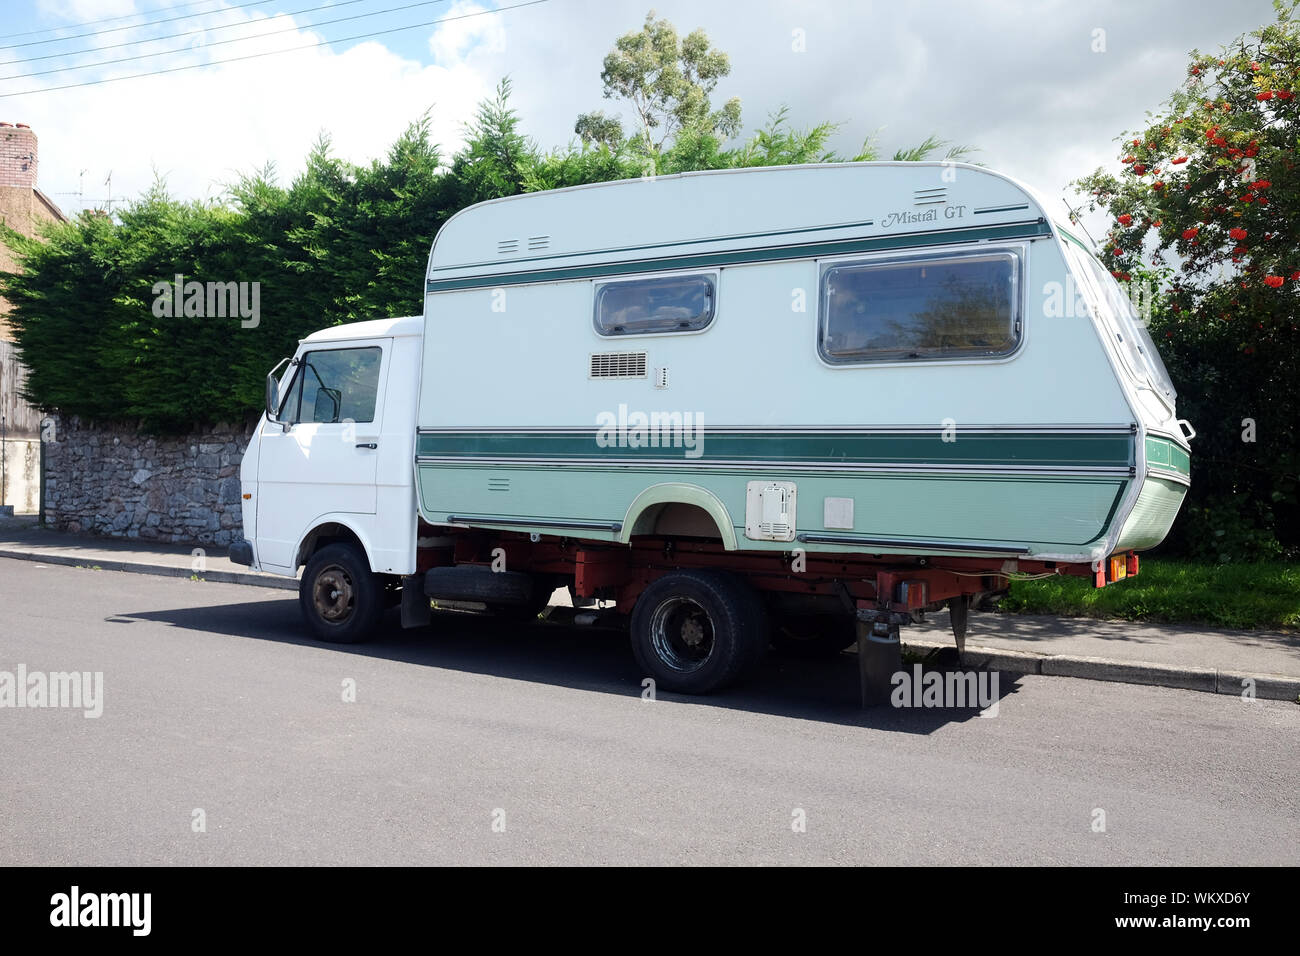 Septembert 2019 - An old caravan on the back off a small truck, used for holidays and vacations Stock Photo